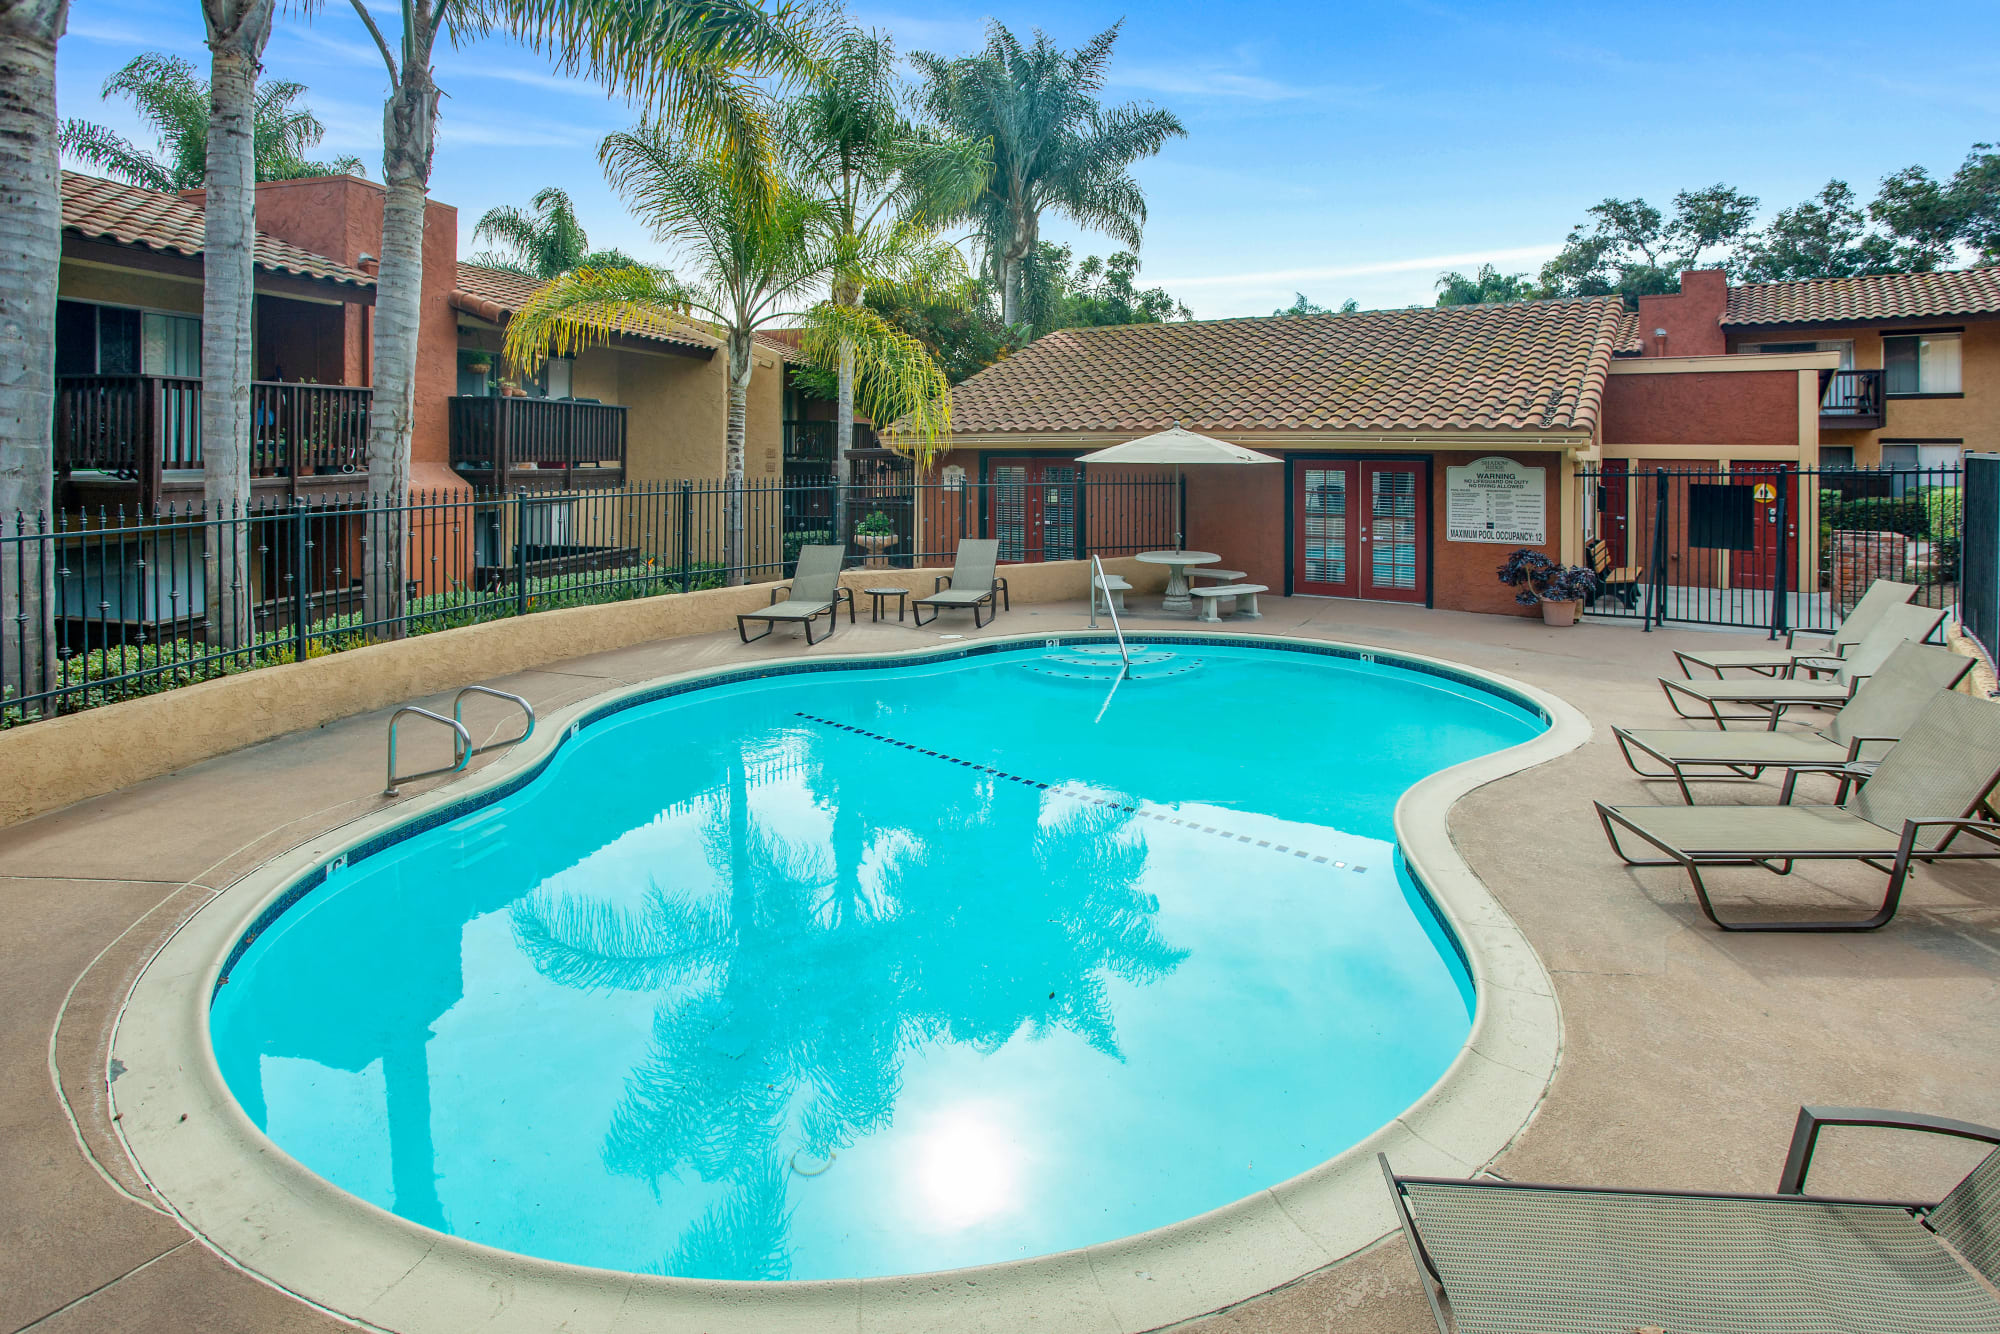 Pool view with lounge chairs and exterior of leasing office